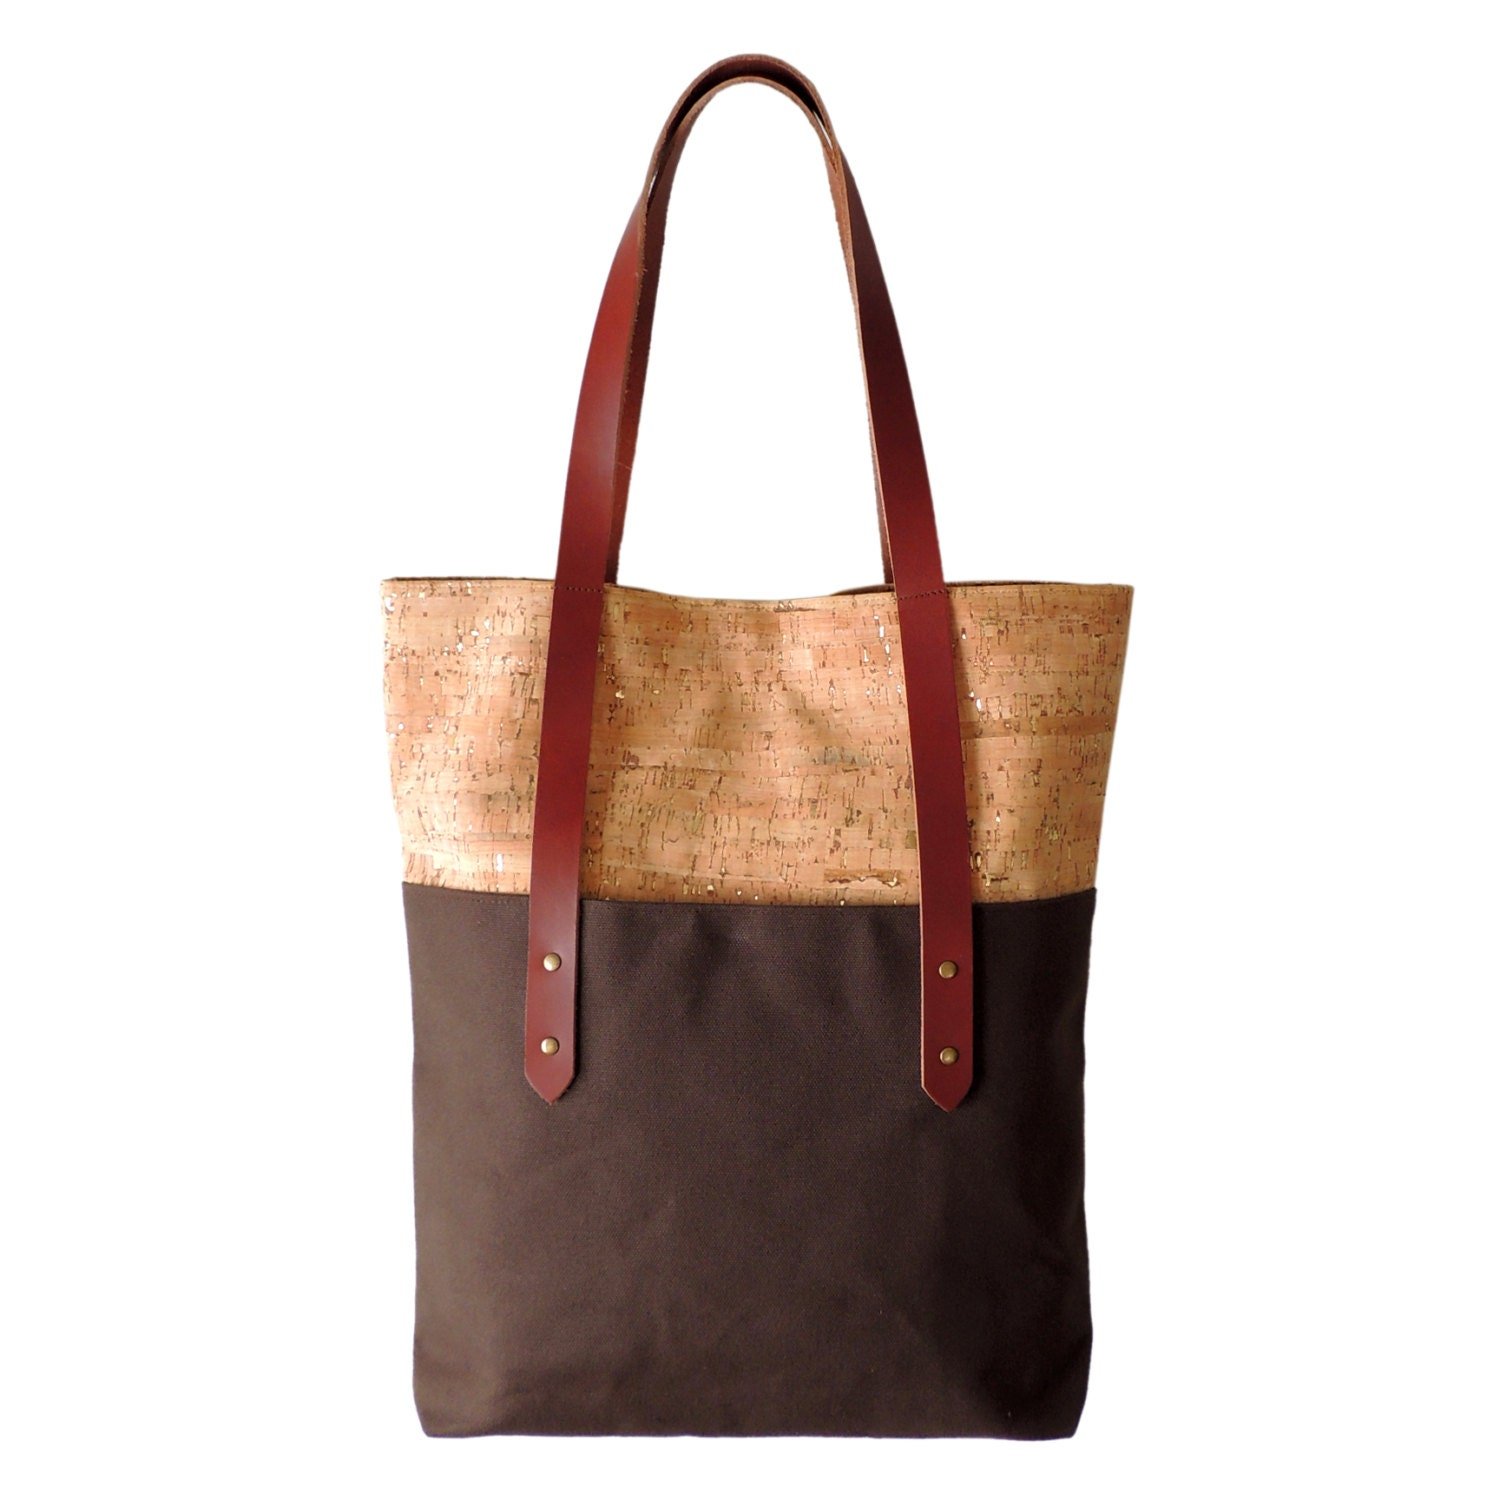 Cork Handbags: Large Brown Tote Bag Cork Canvas And Leather Tote By